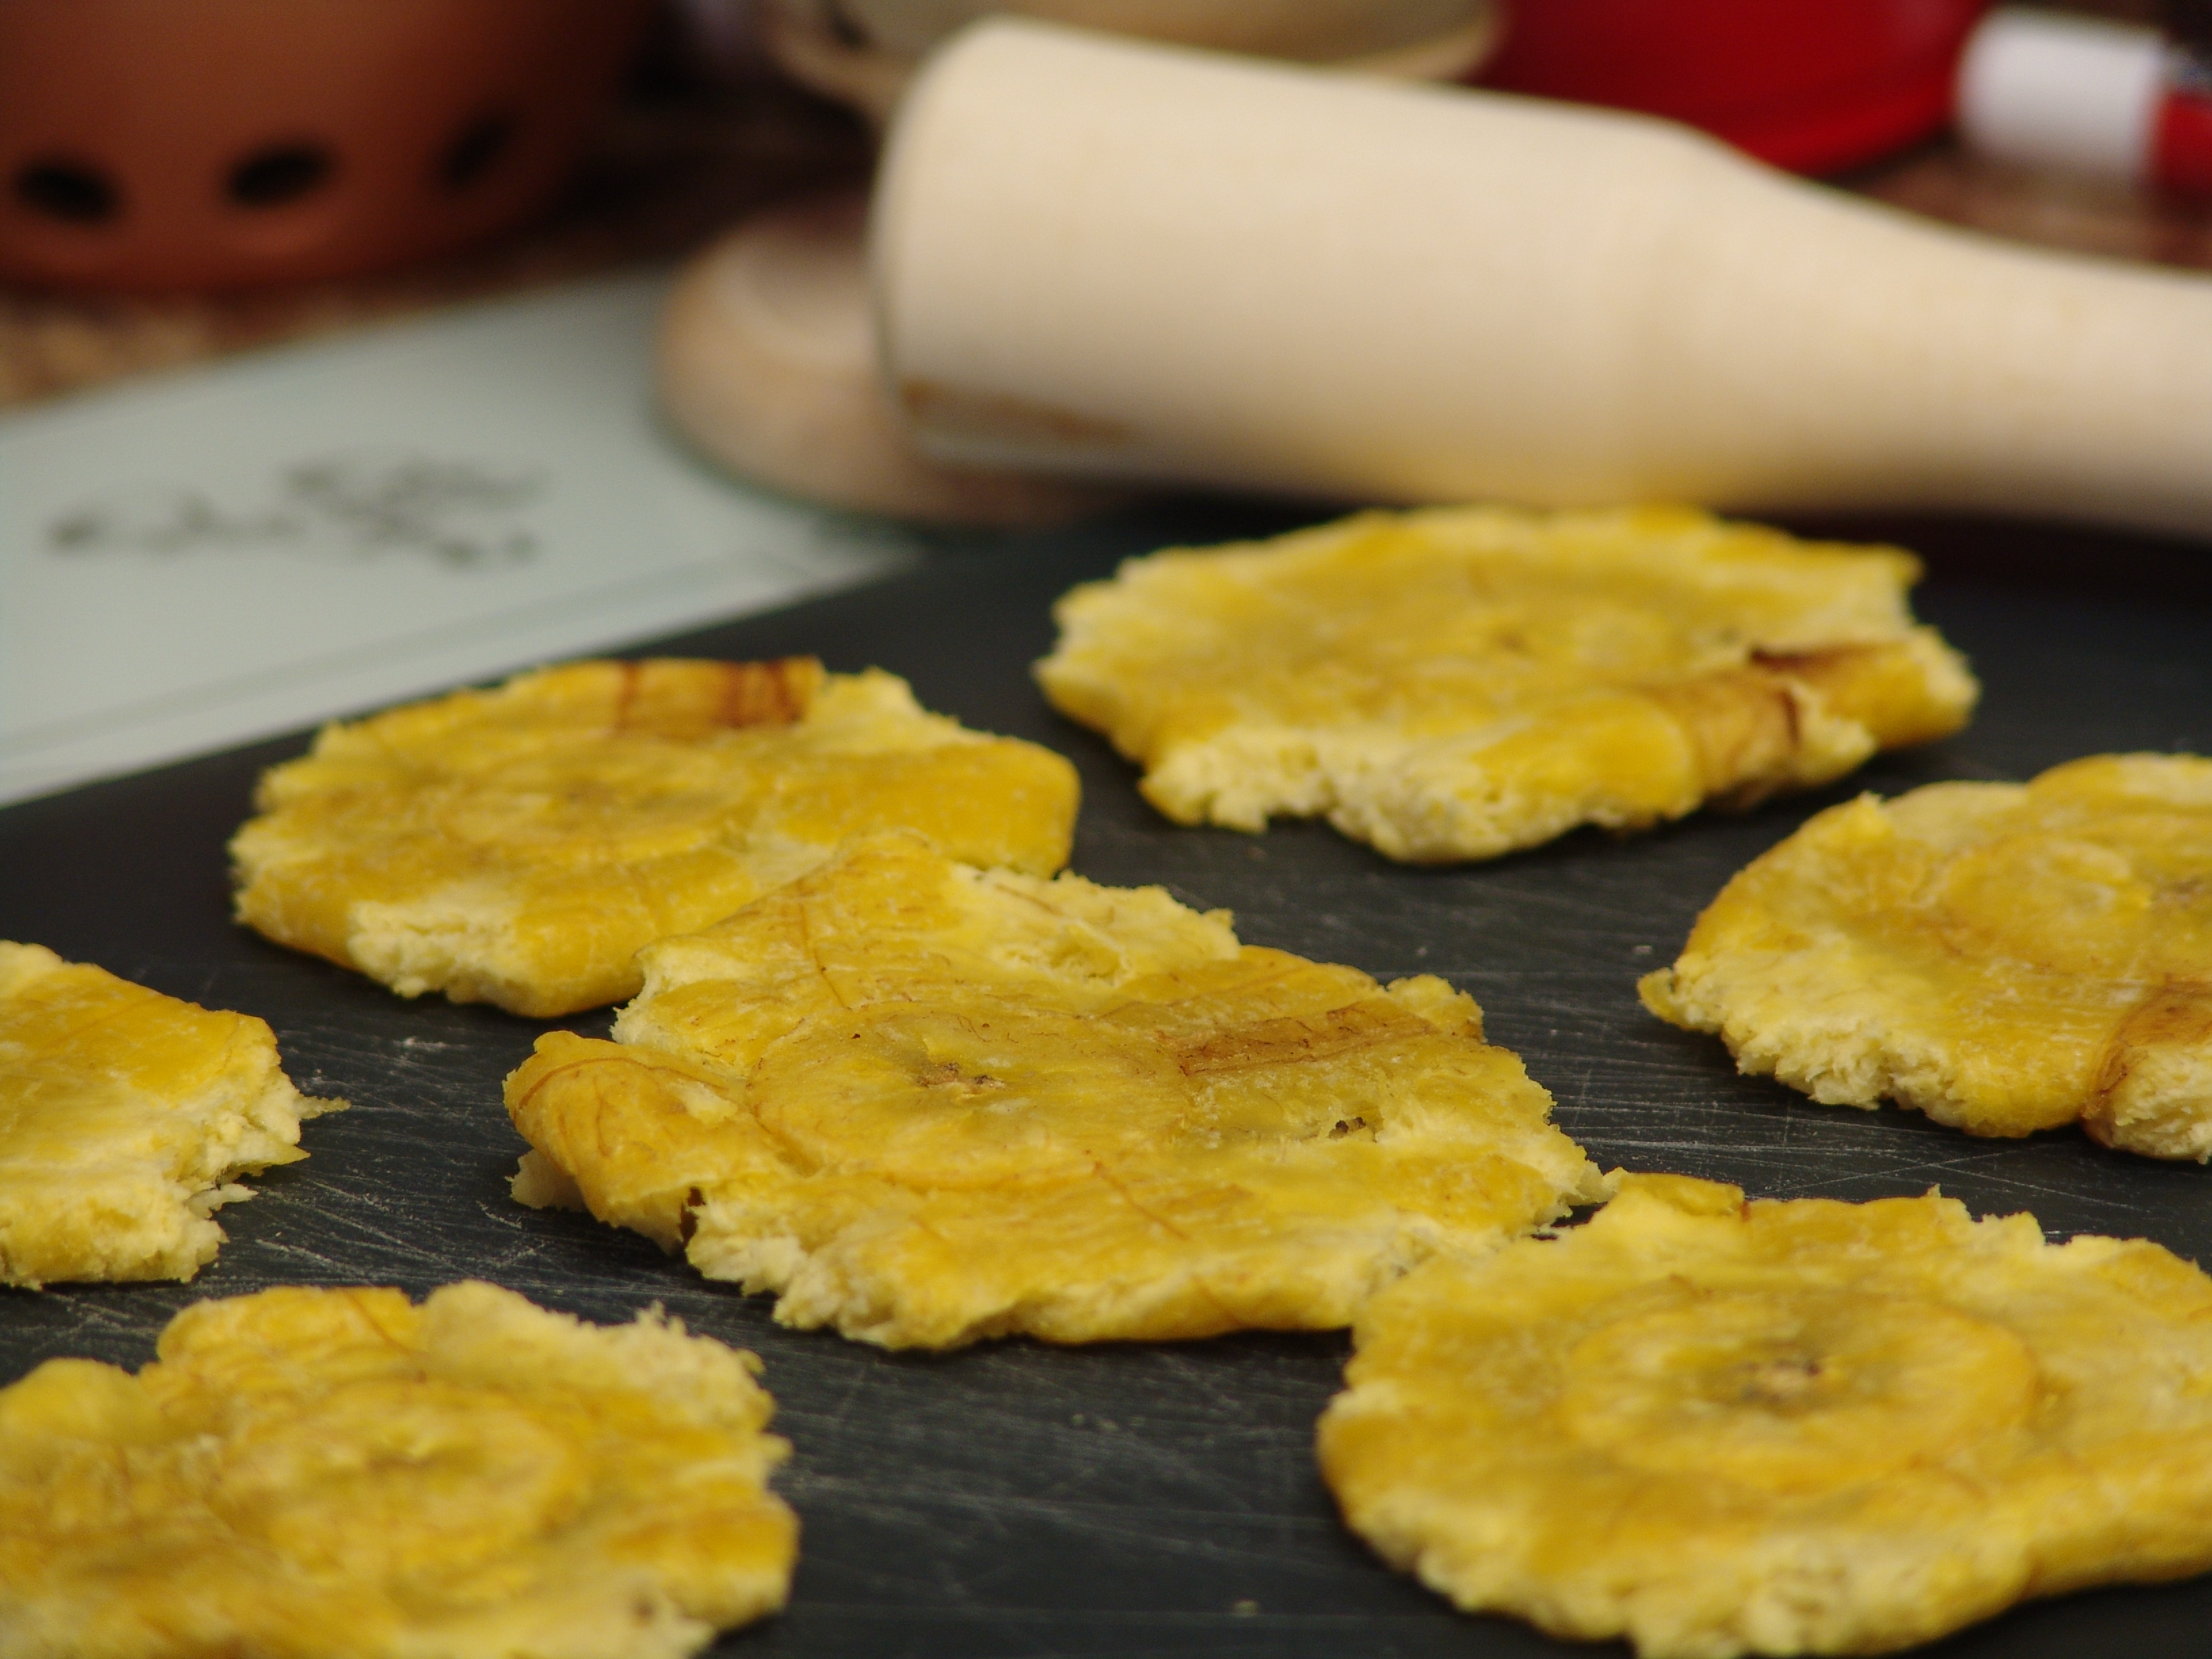 Pressed tostones waiting to be fried for the second time.